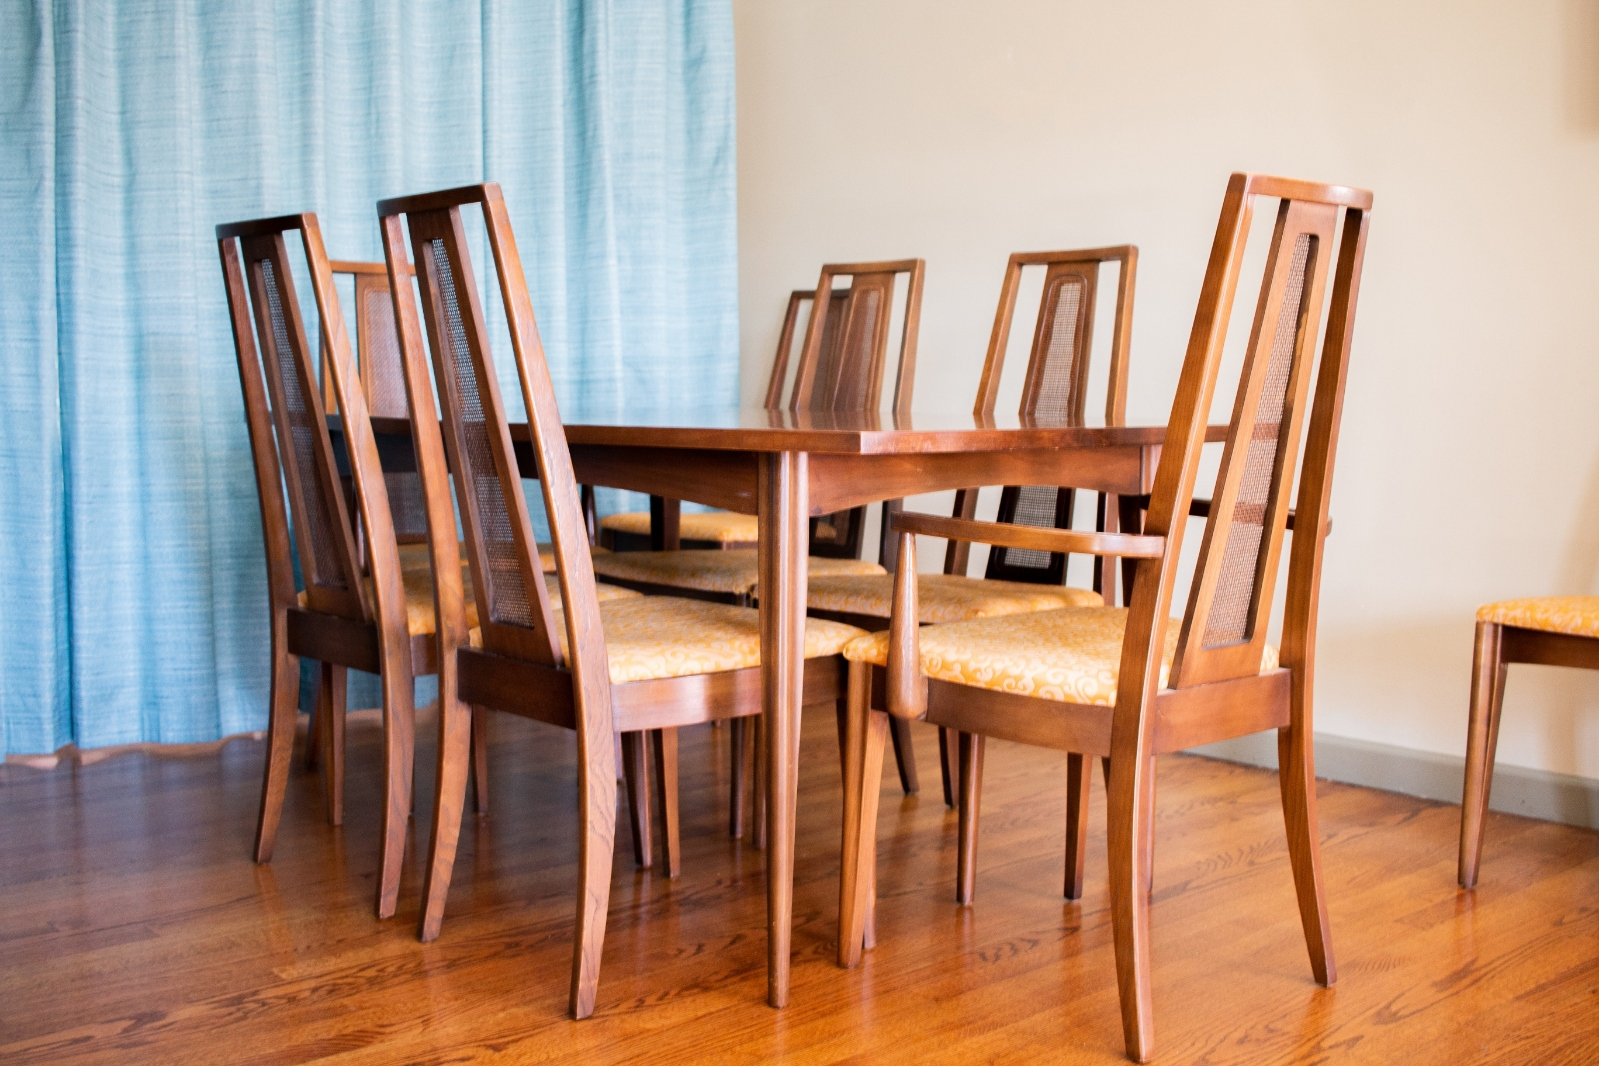 Broyhill Emphasis Series Mid Century Dining Table and Chairs_3